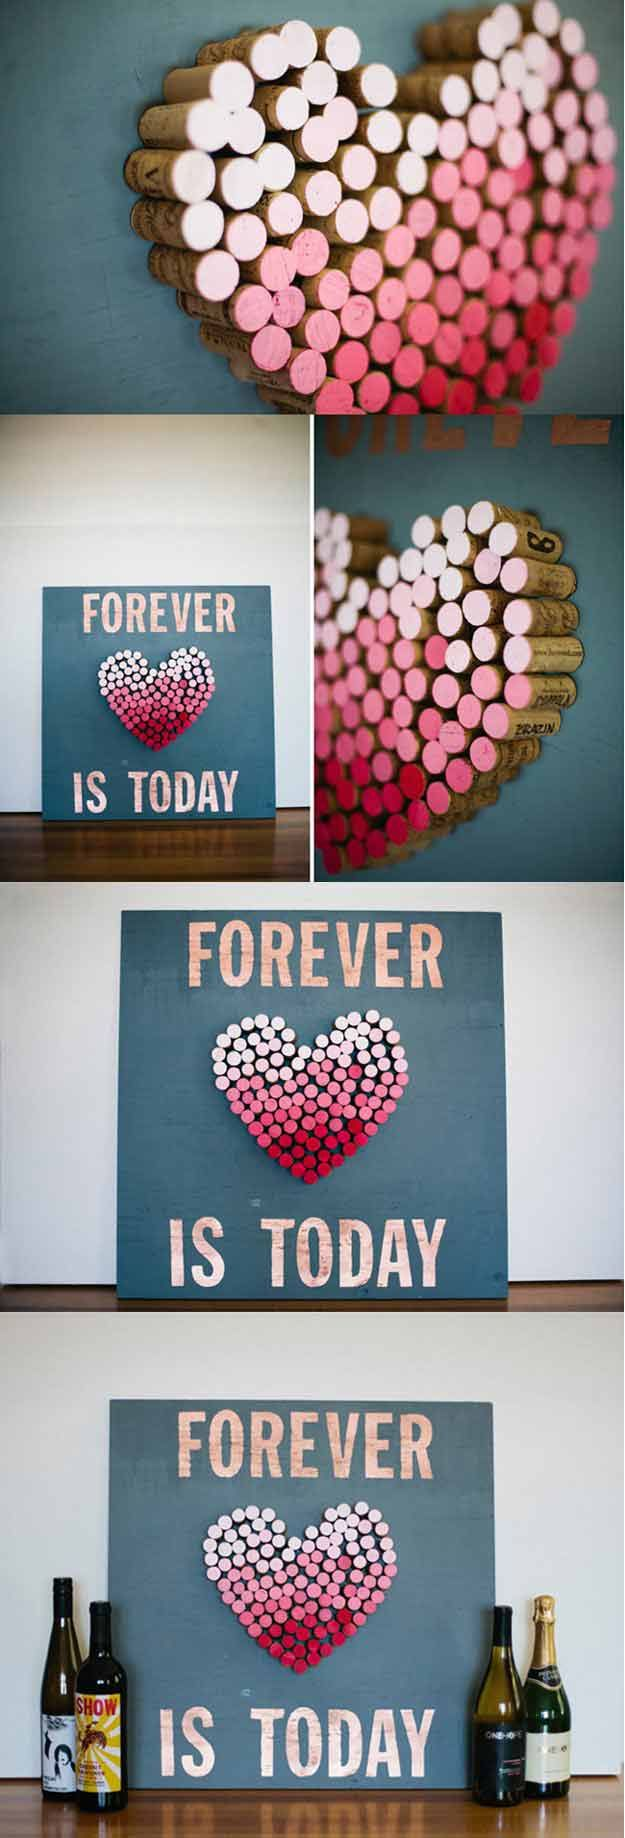 Easy diy projects for teenage girls rooms - 25 Unique Diy Projects For Teens Ideas On Pinterest Diy Crafts For Teens Diy And Crafts And Diy Decorations Projects